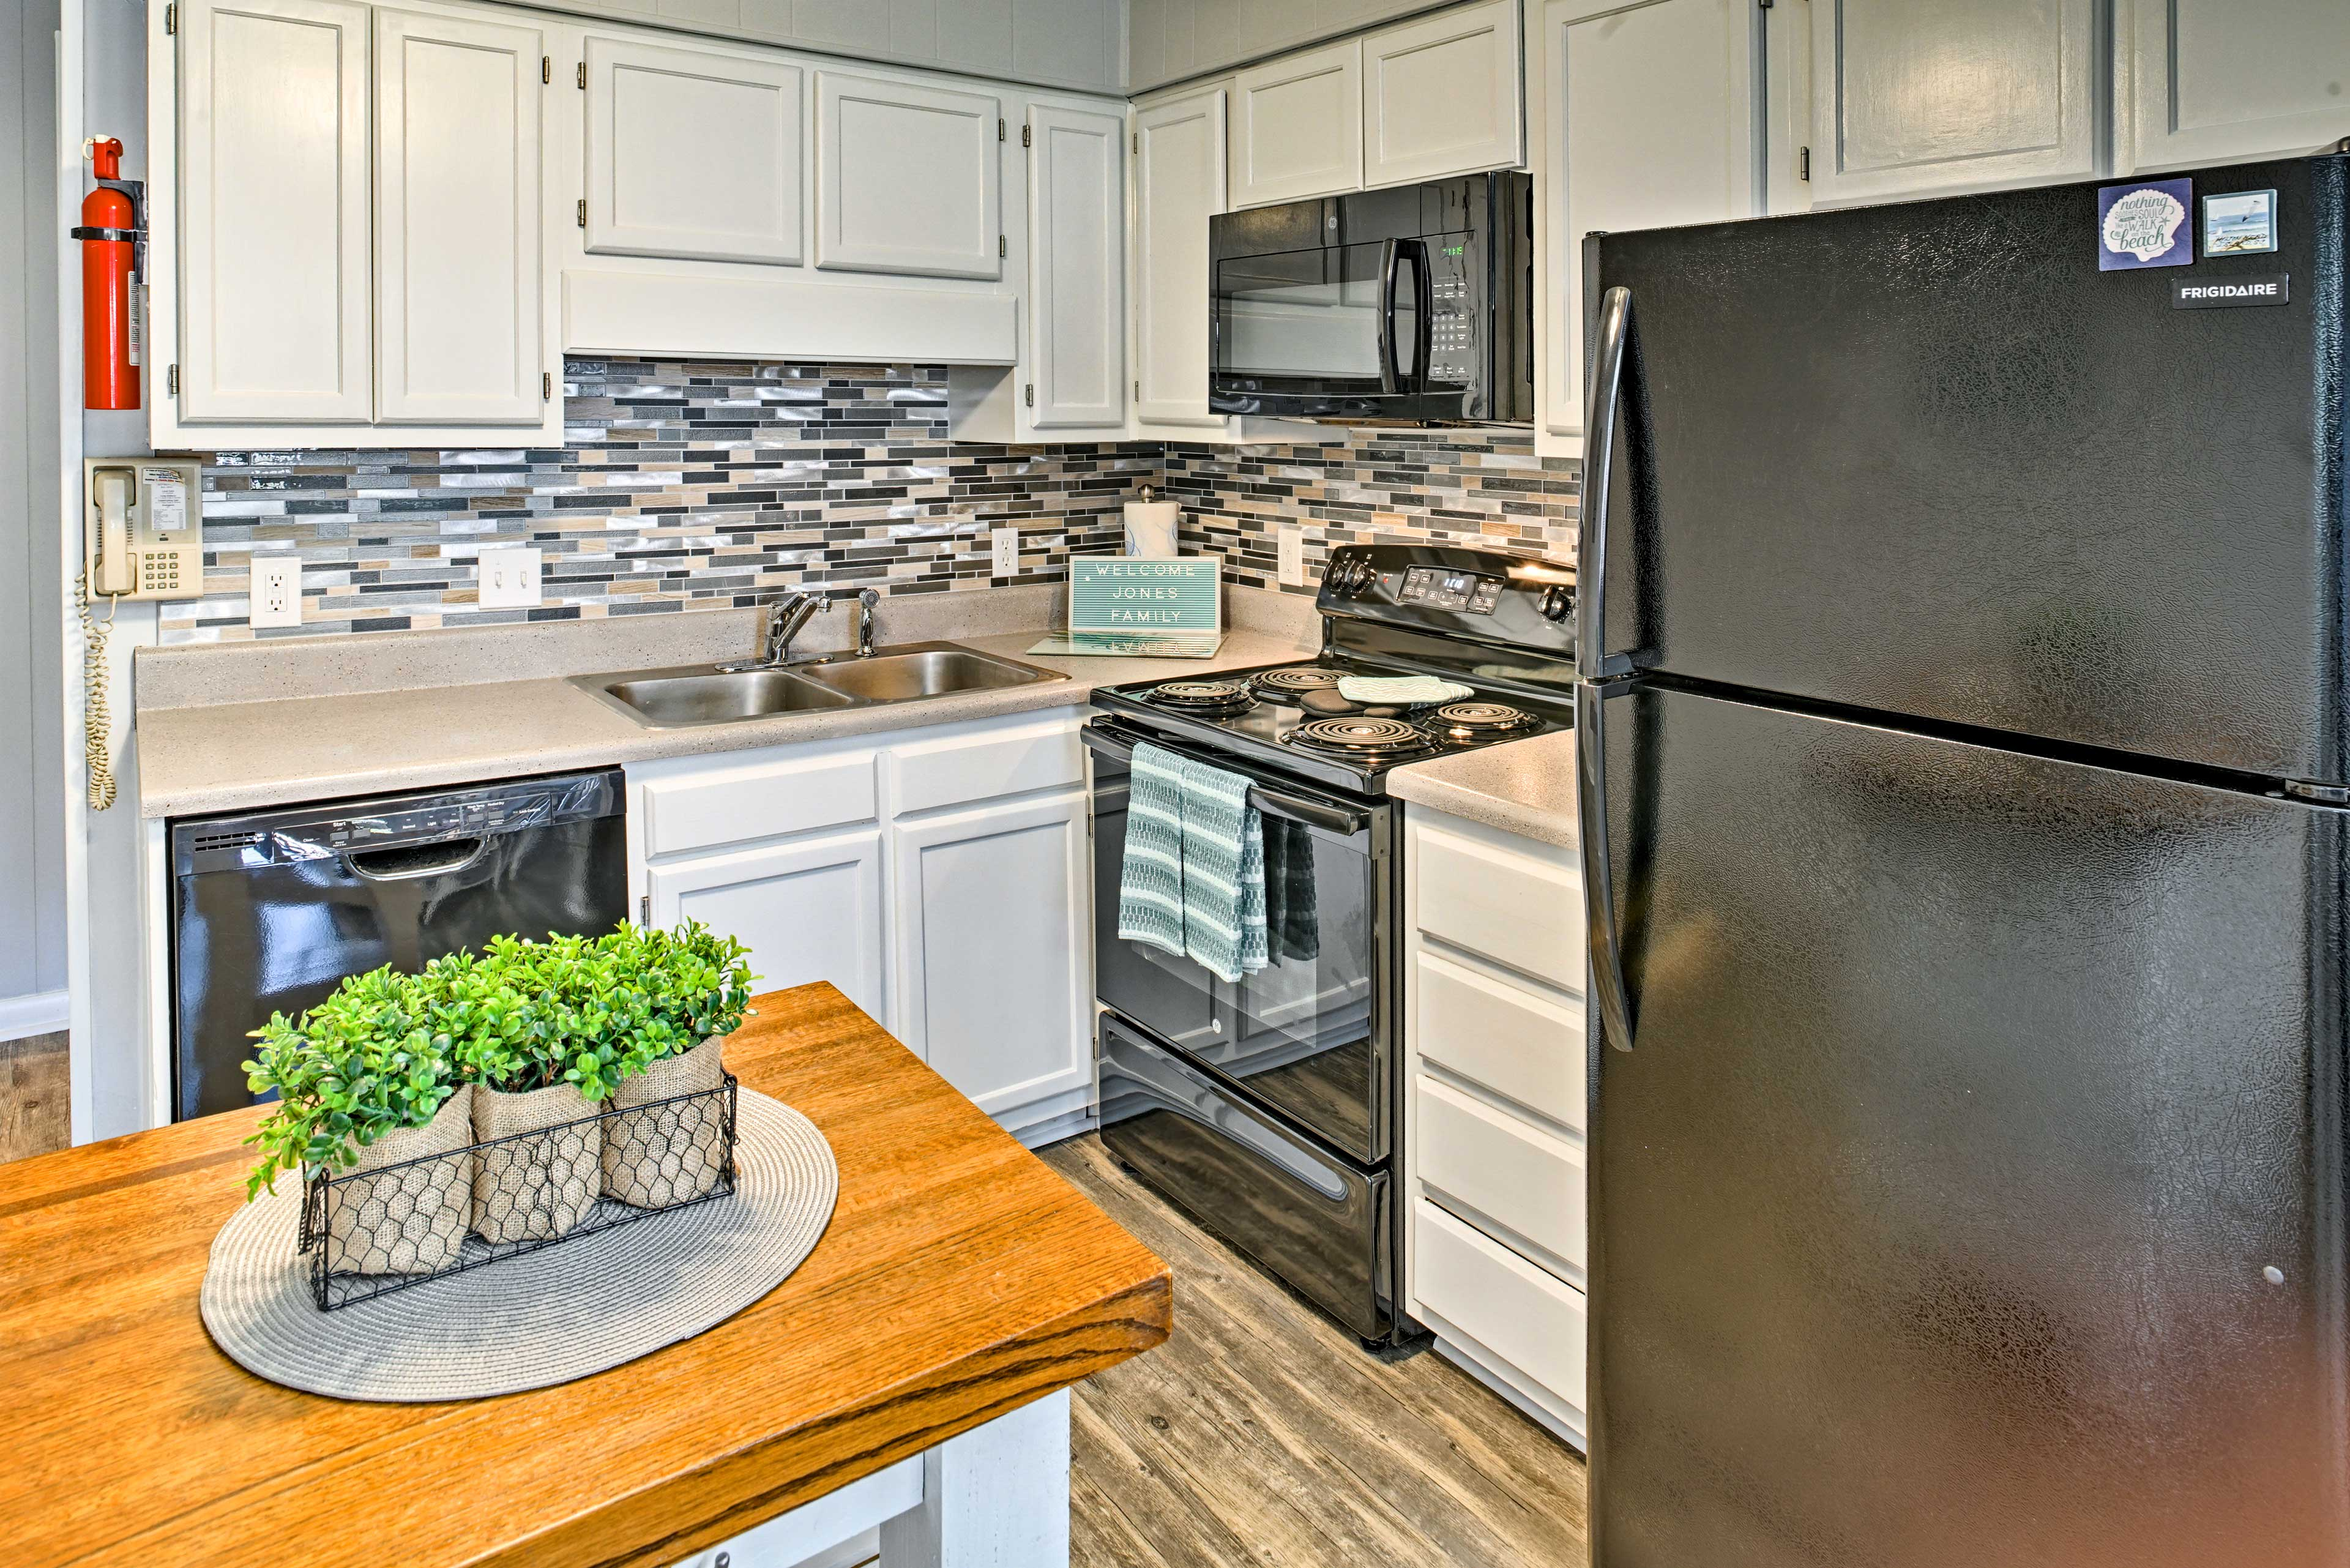 The kitchen is fully equipped with brand-new appliances and a kitchen island.